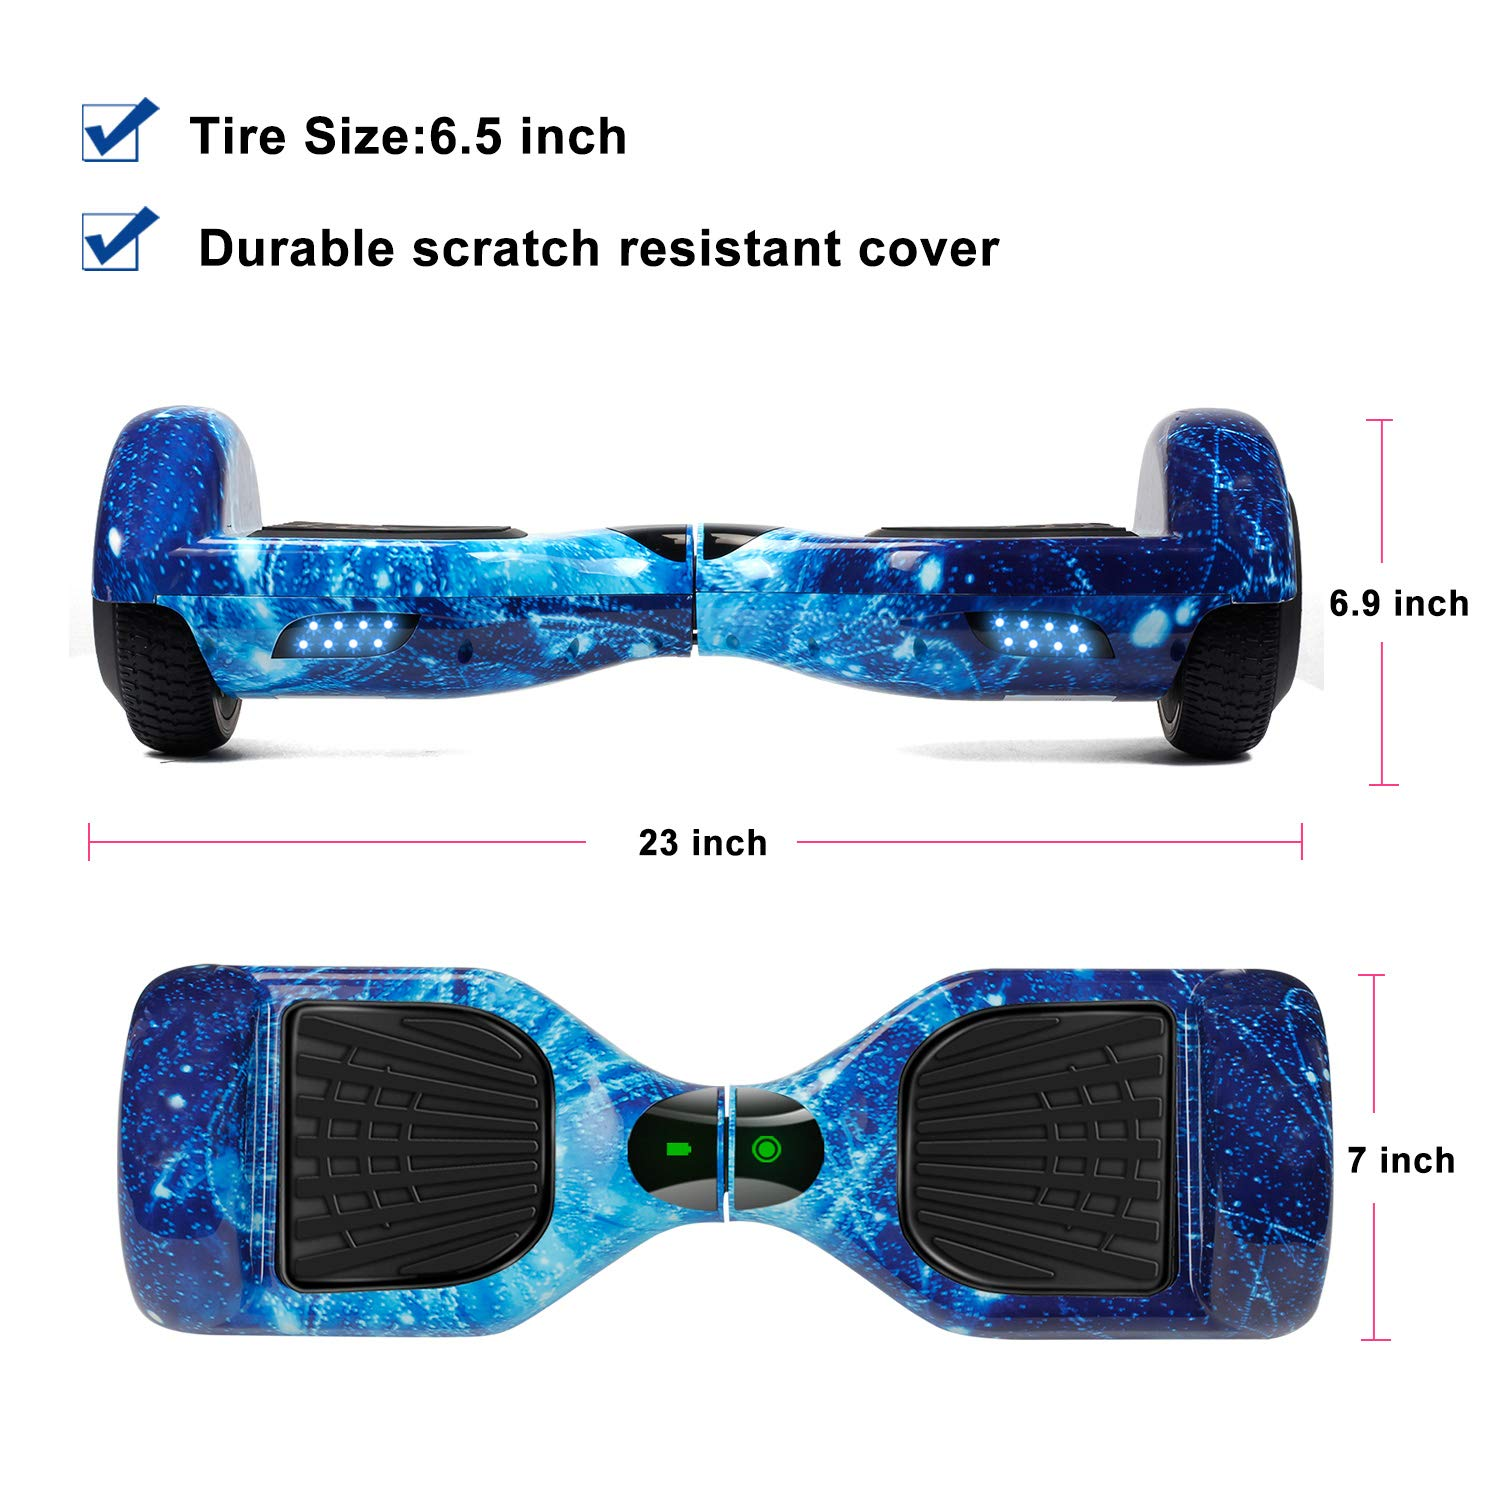 VEVELINE Hoverboard UL2272 Certified 6.5 inch Self Balancing Electric Scooter with Colorful Flash Wheel,Hover Board for Kids Adults with Free Carry Bag